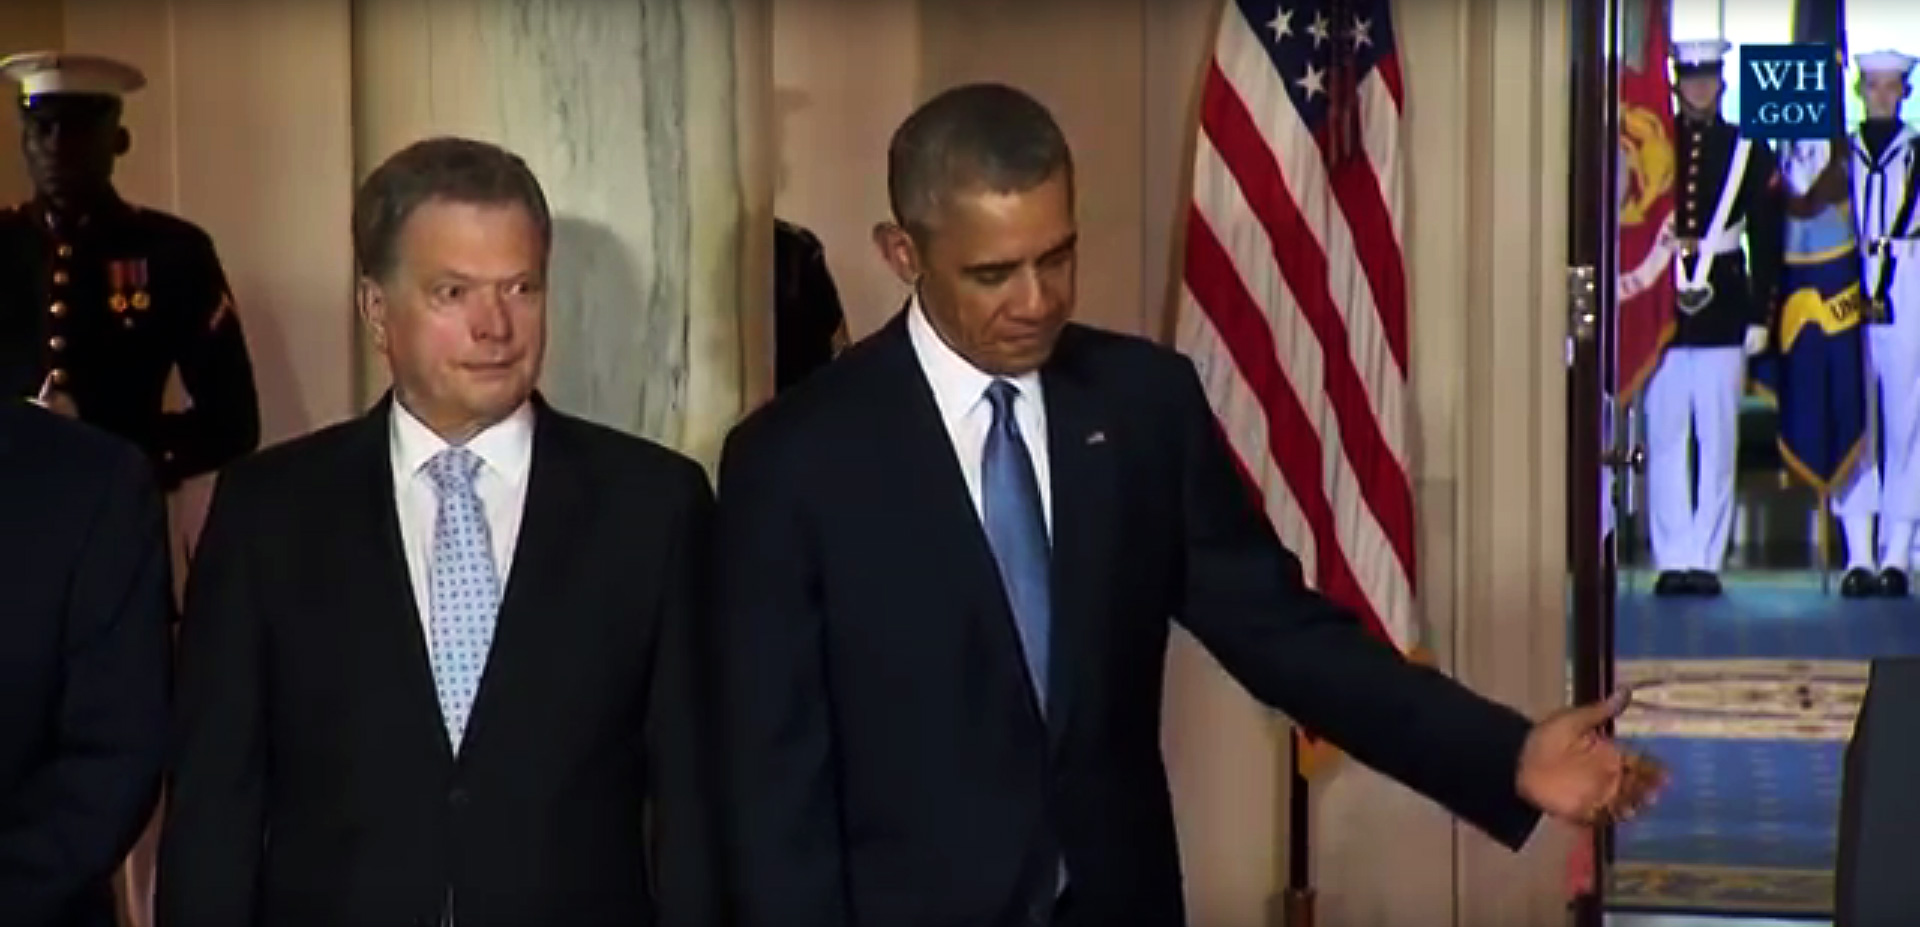 President Sauli Niinistö and his US counterpart, Barack Obama, at the White House in Washington D.C. on May 13 2016. Picture: White House Live Stream